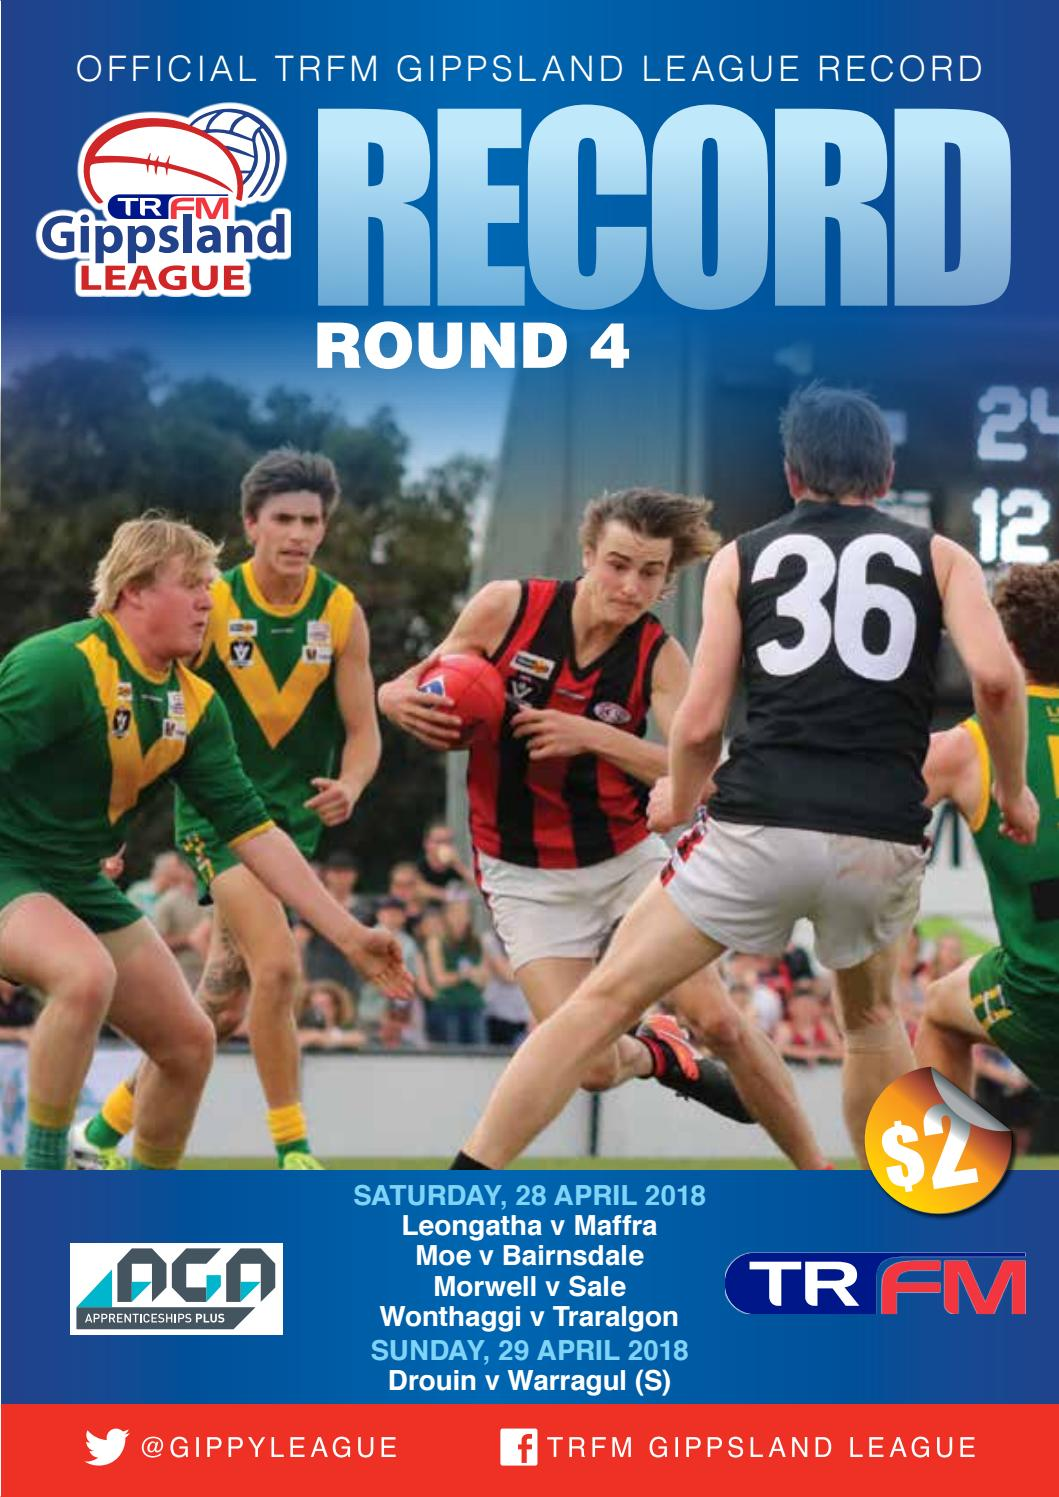 Gippsland 2018 Record Round 4 By Adcell Group Issuu